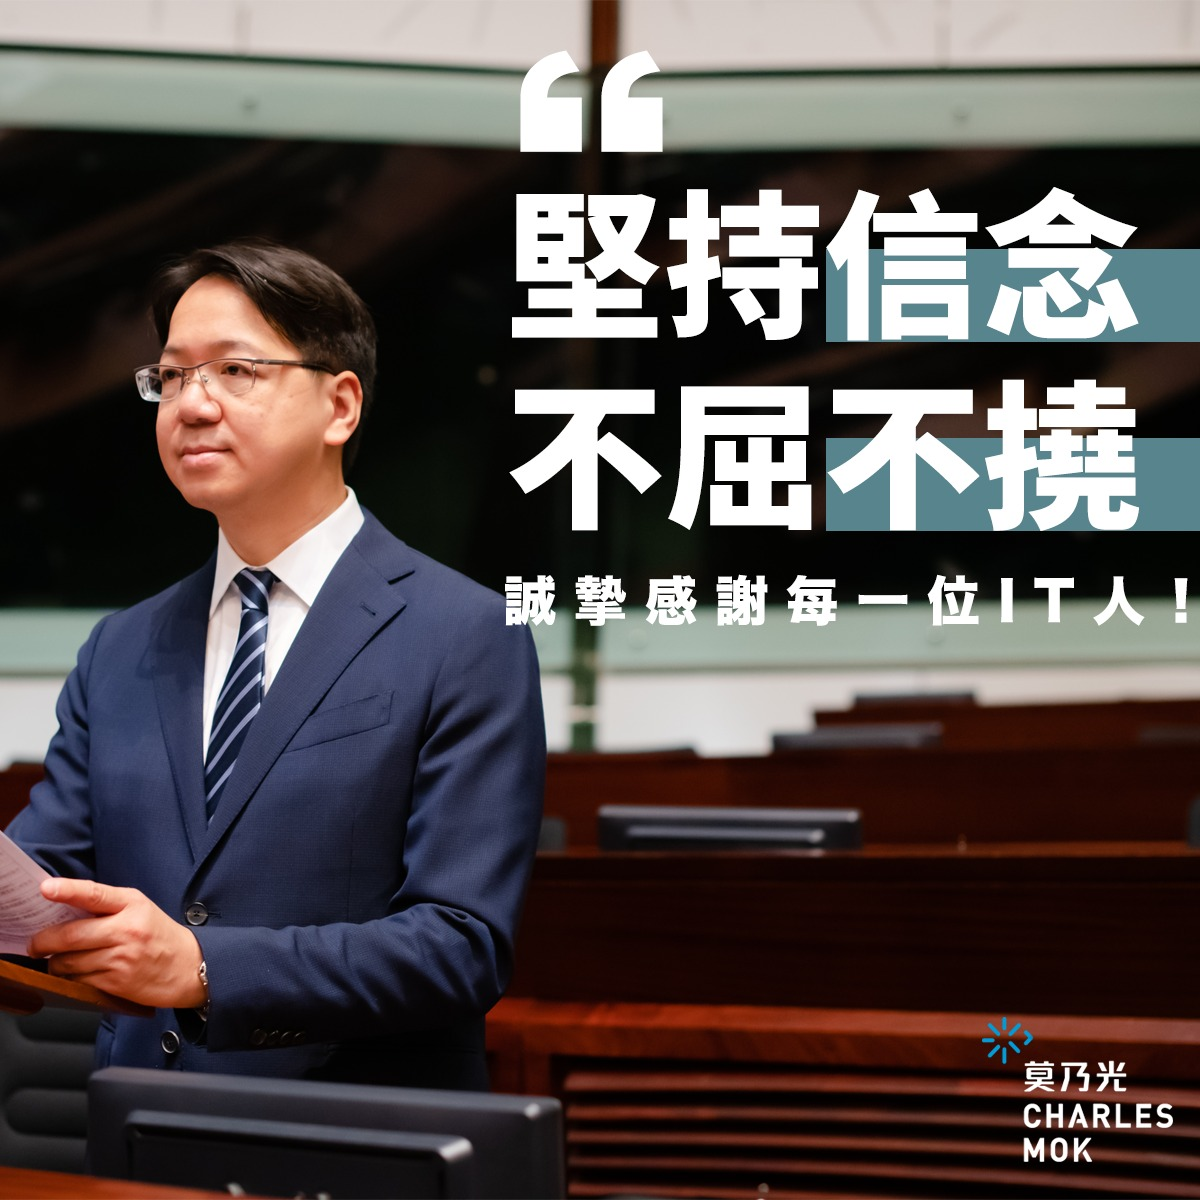 link to [Press release] Charles Mok responded to the 2020-21 Budget